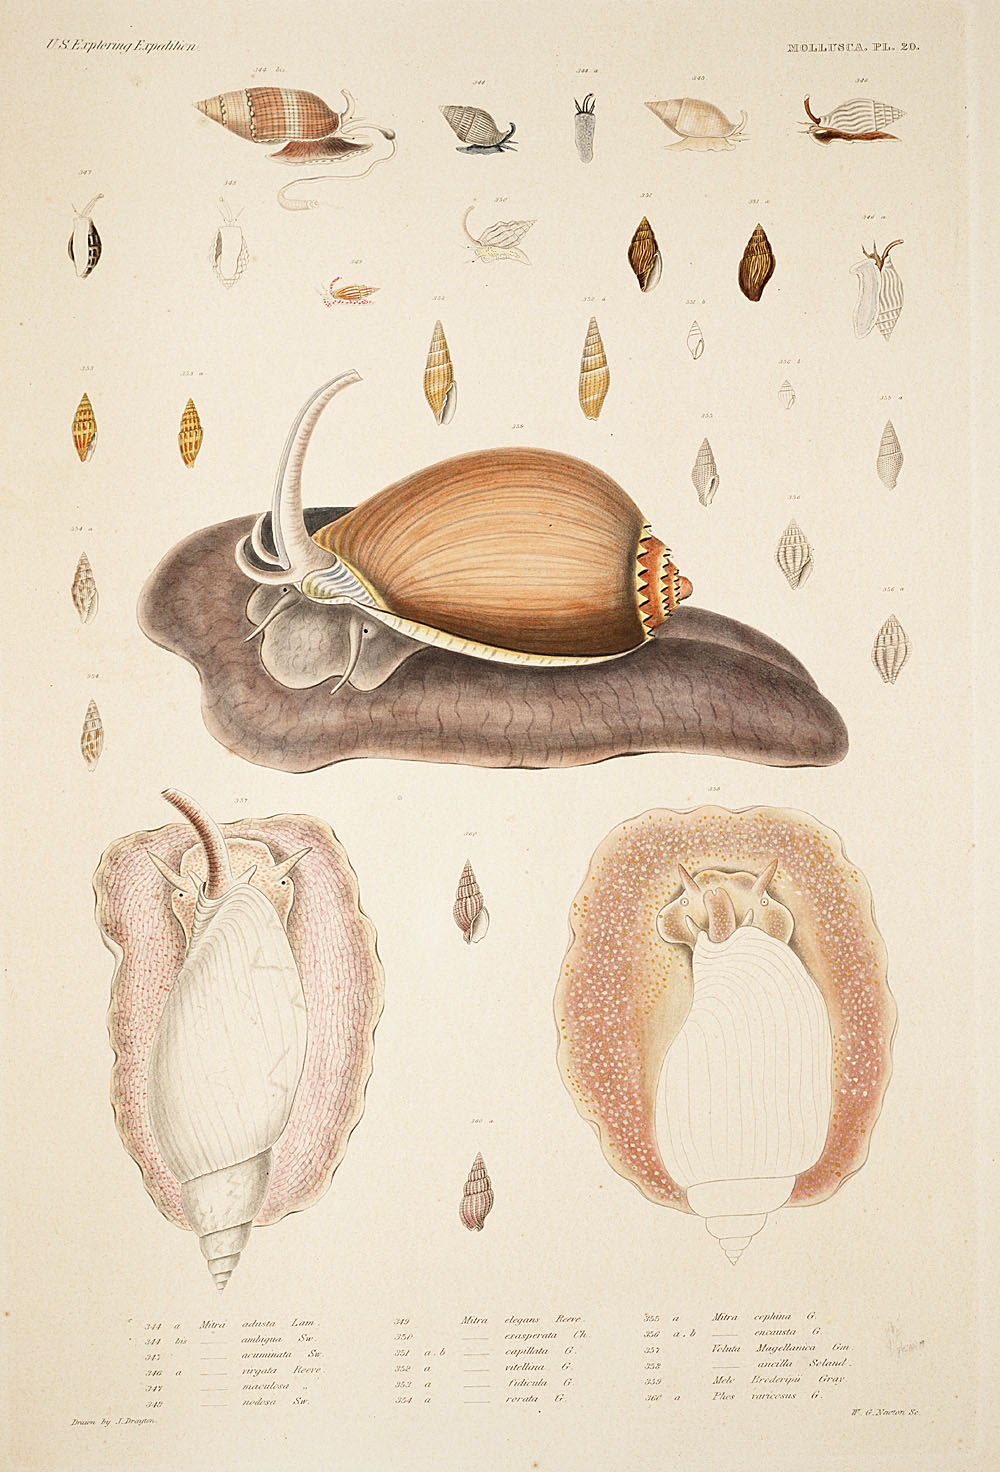 Mollusca, Pl. 20,  Image number:sil19-18-061b